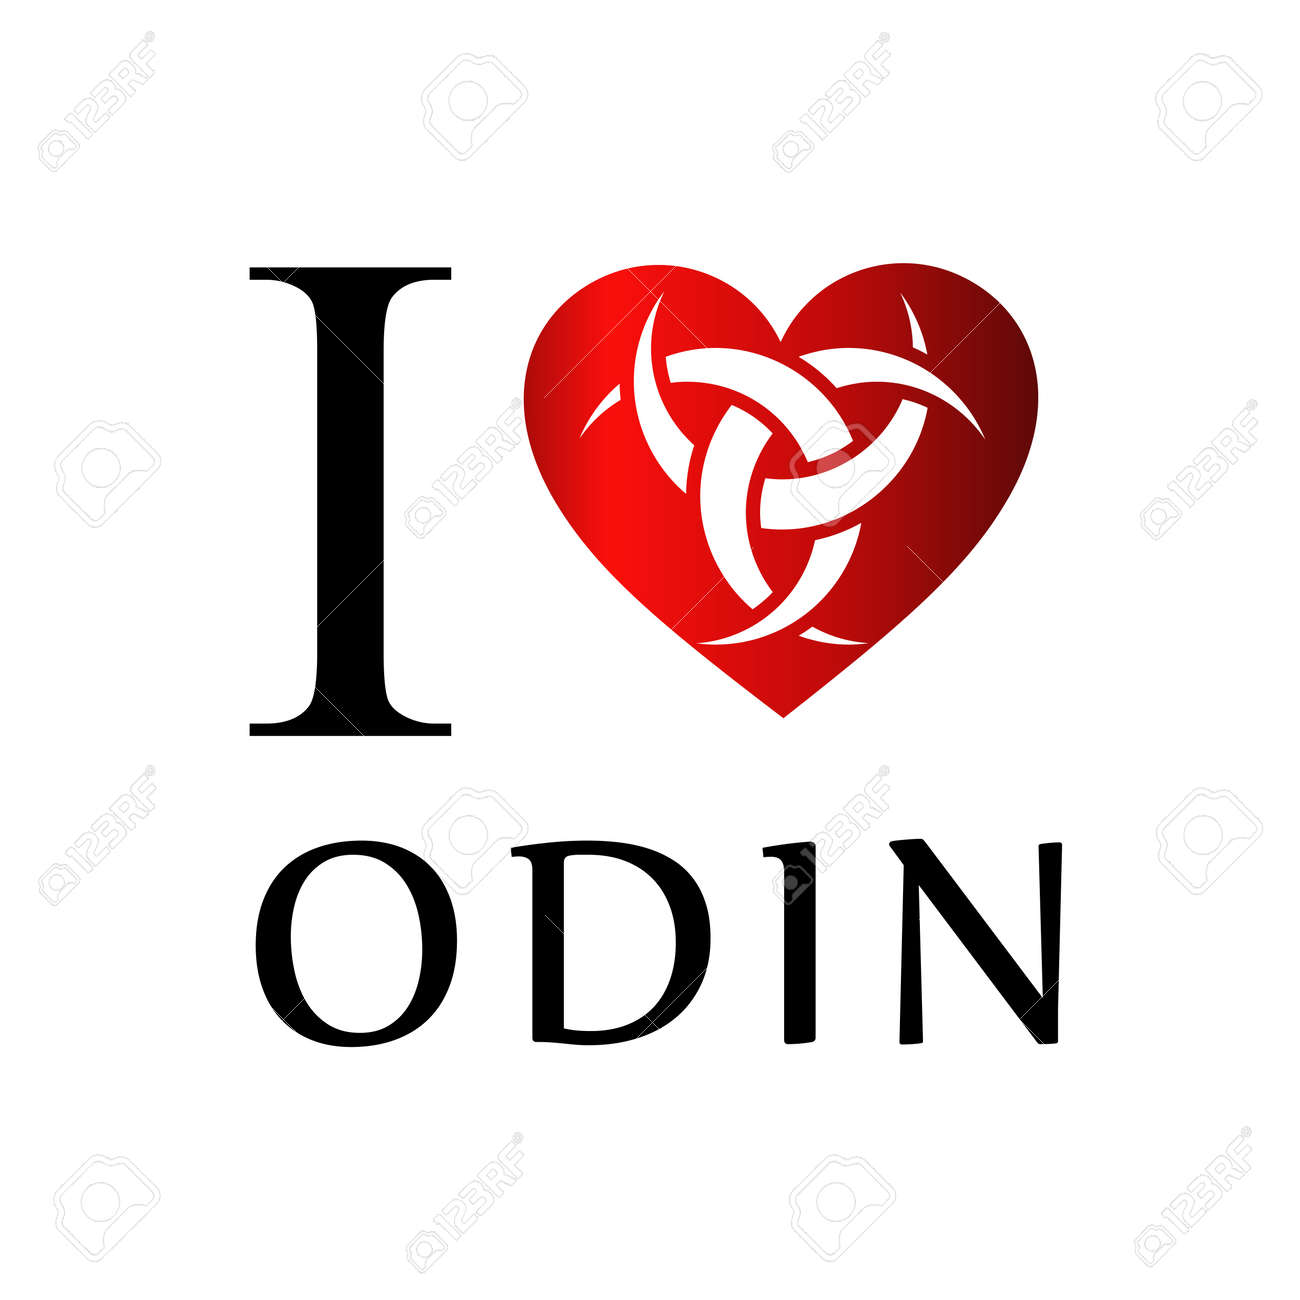 I Love Odin The Graphic Is A Symbol Of The Horns Of Odin A